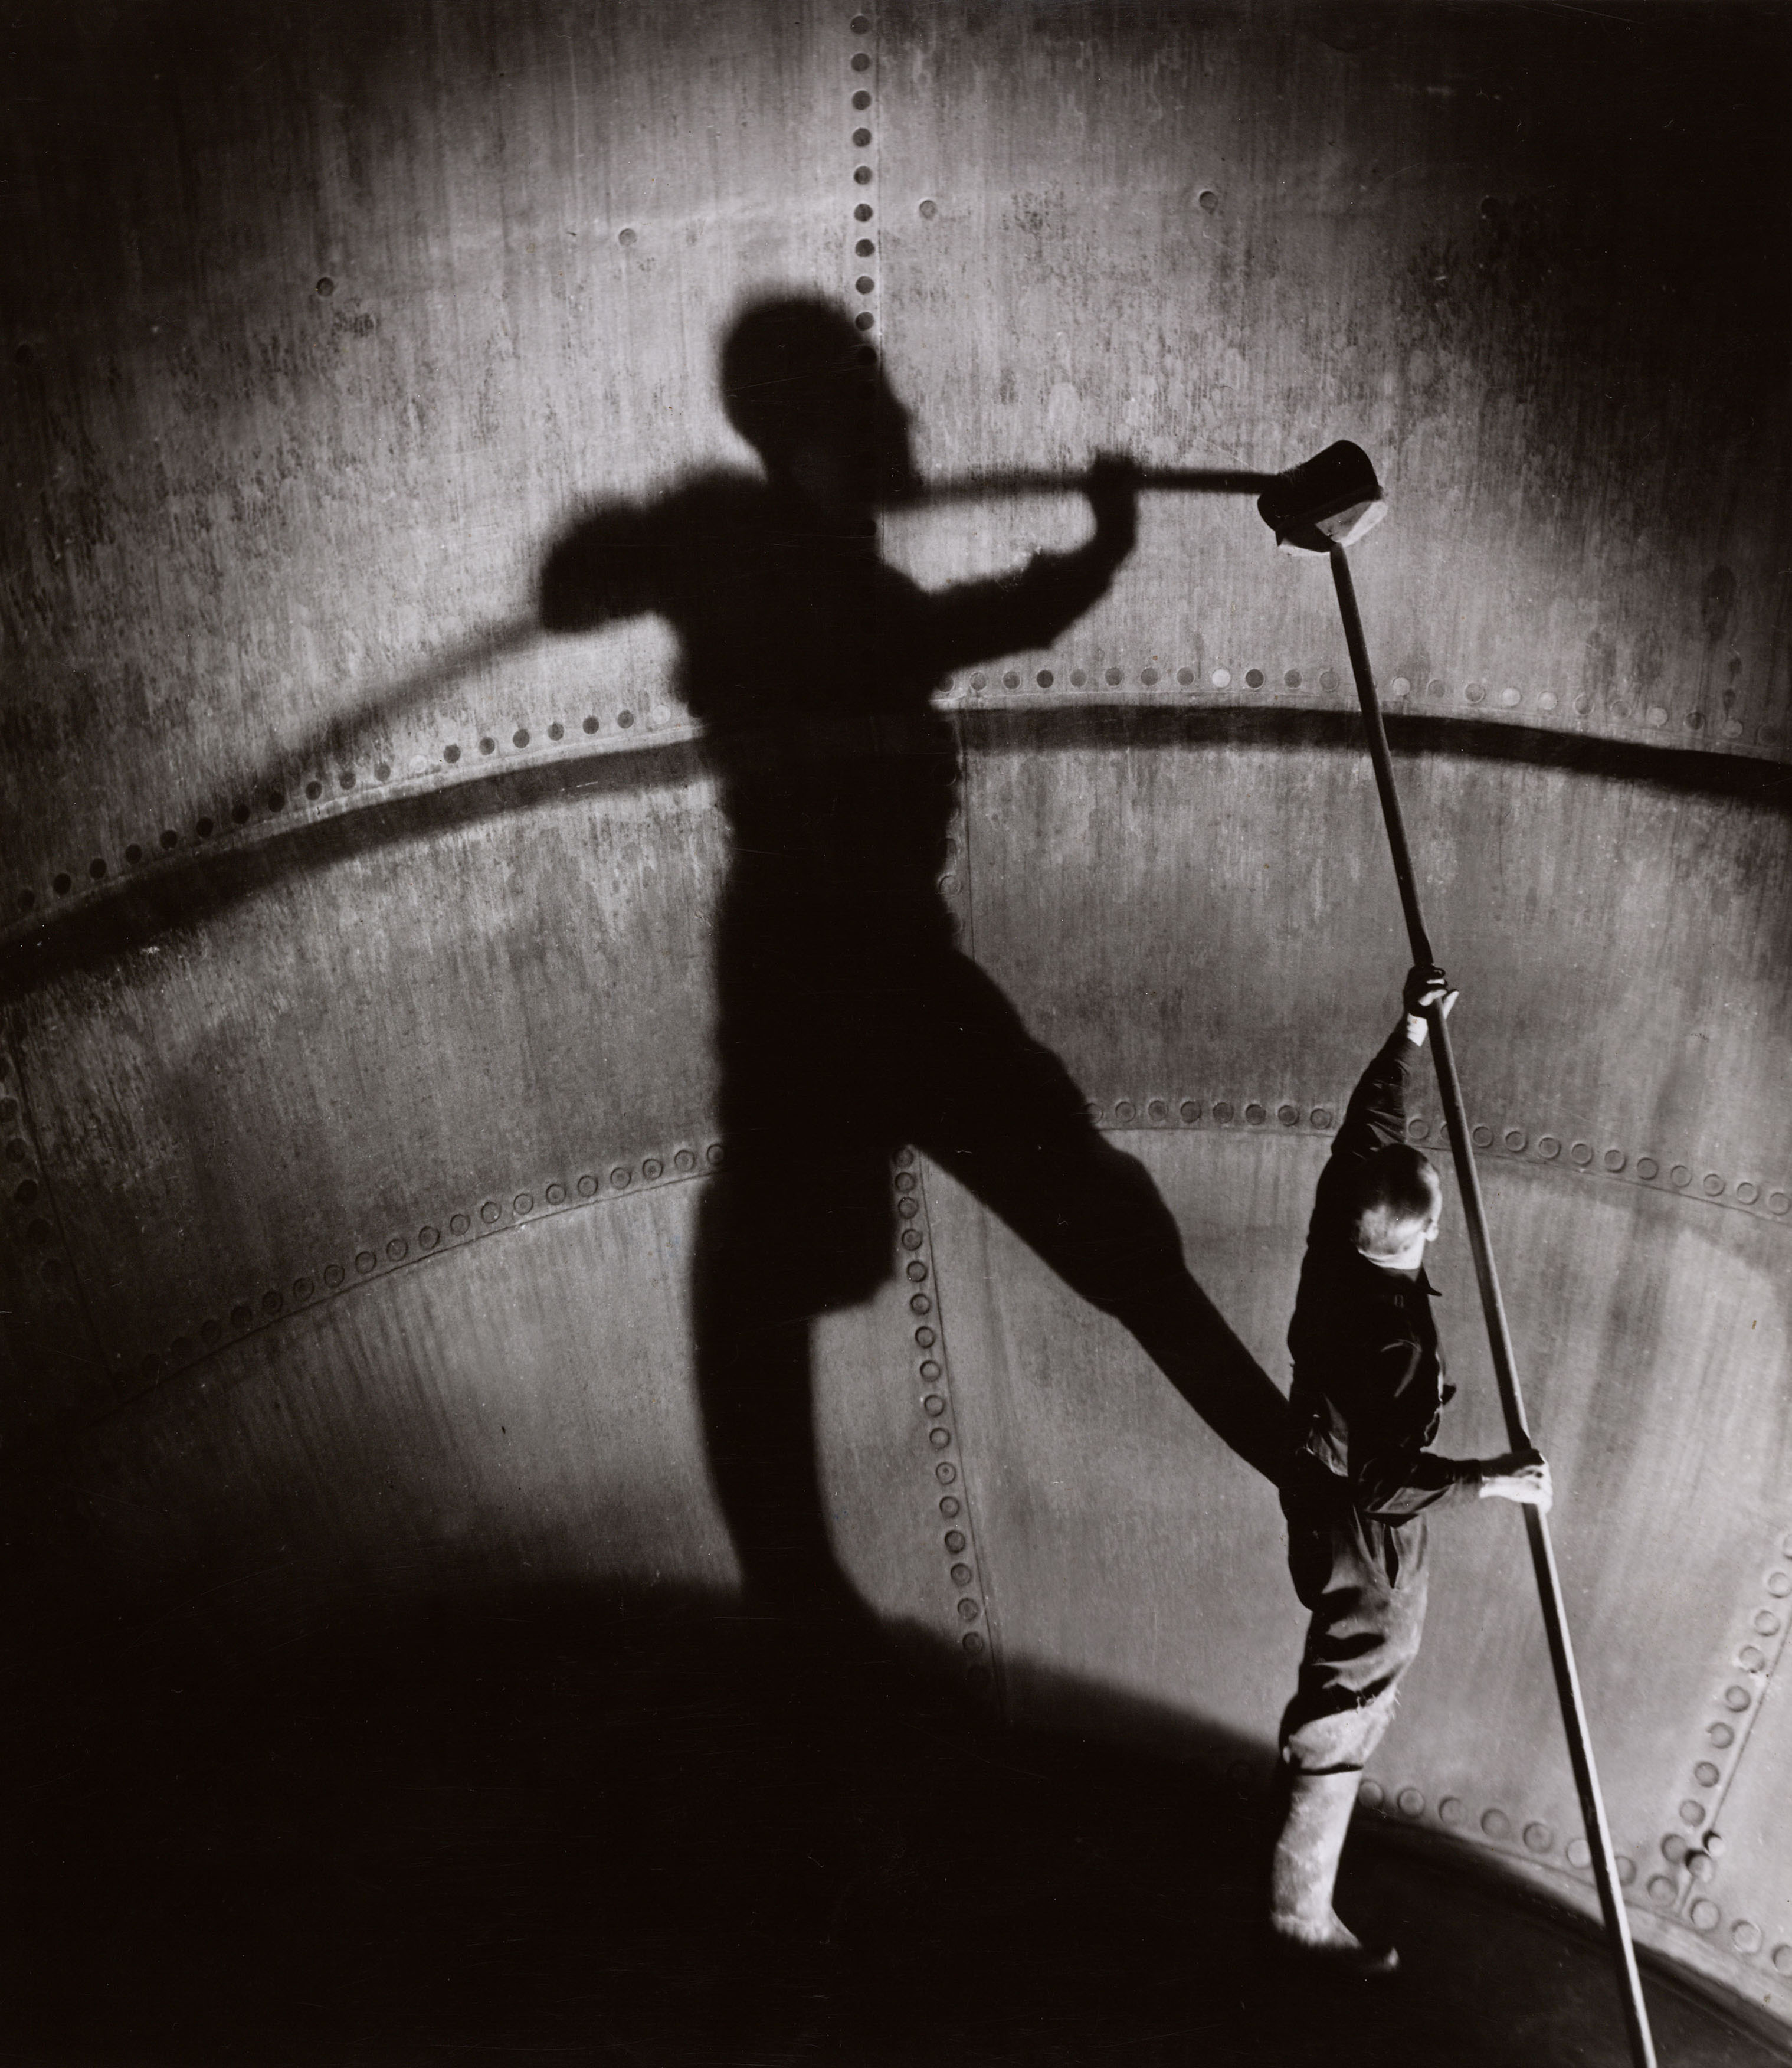 A brewery worker casts a giant shadow as he cleans inside a copper coffer. Taylor-Walker Brewery, Manchester.